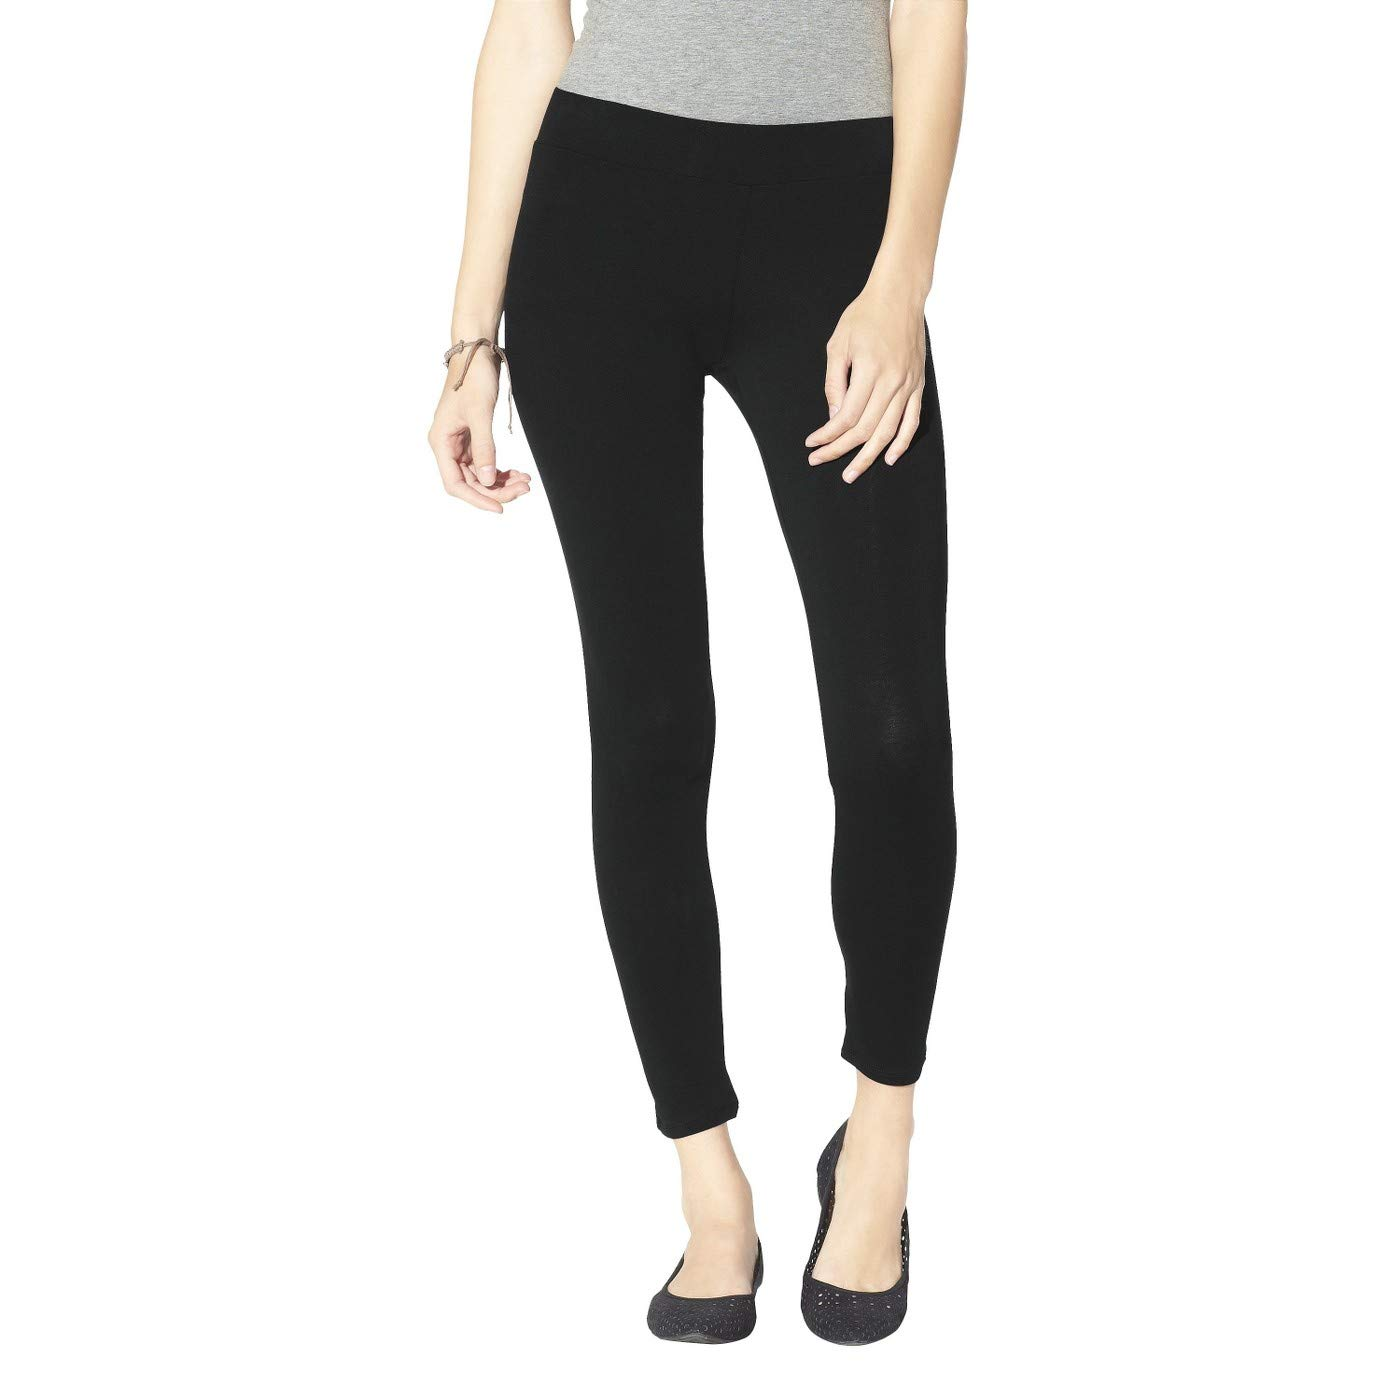 0bc259aac9cf3 Mossimo Women's Charcoal Grey Textured Ribbed Leggings (M) at Amazon  Women's Clothing store: